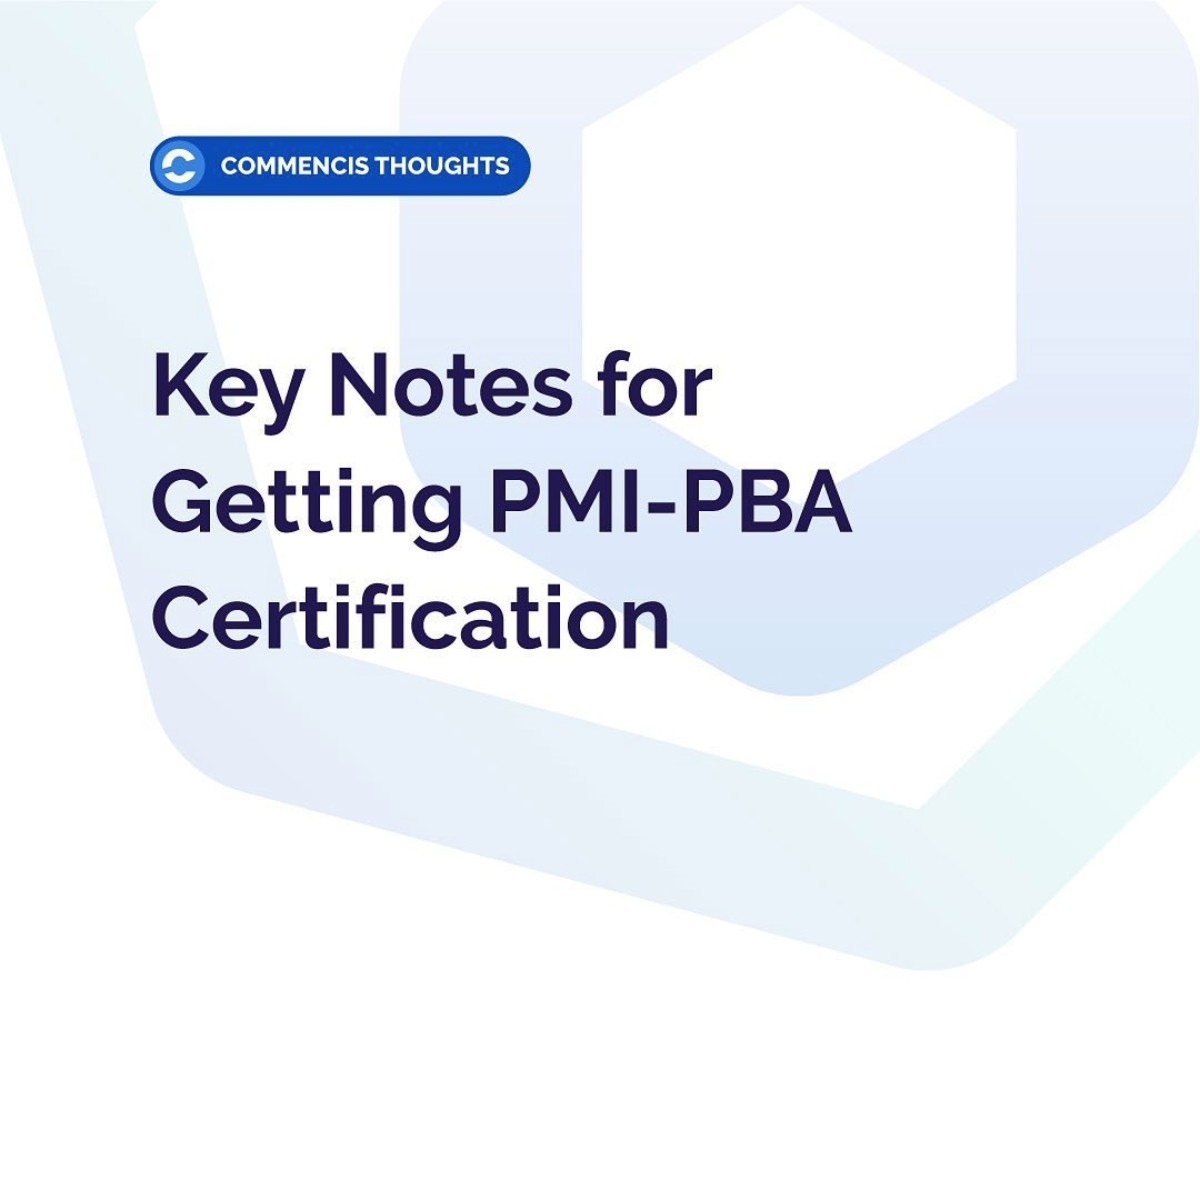 pmi-pba certifiation